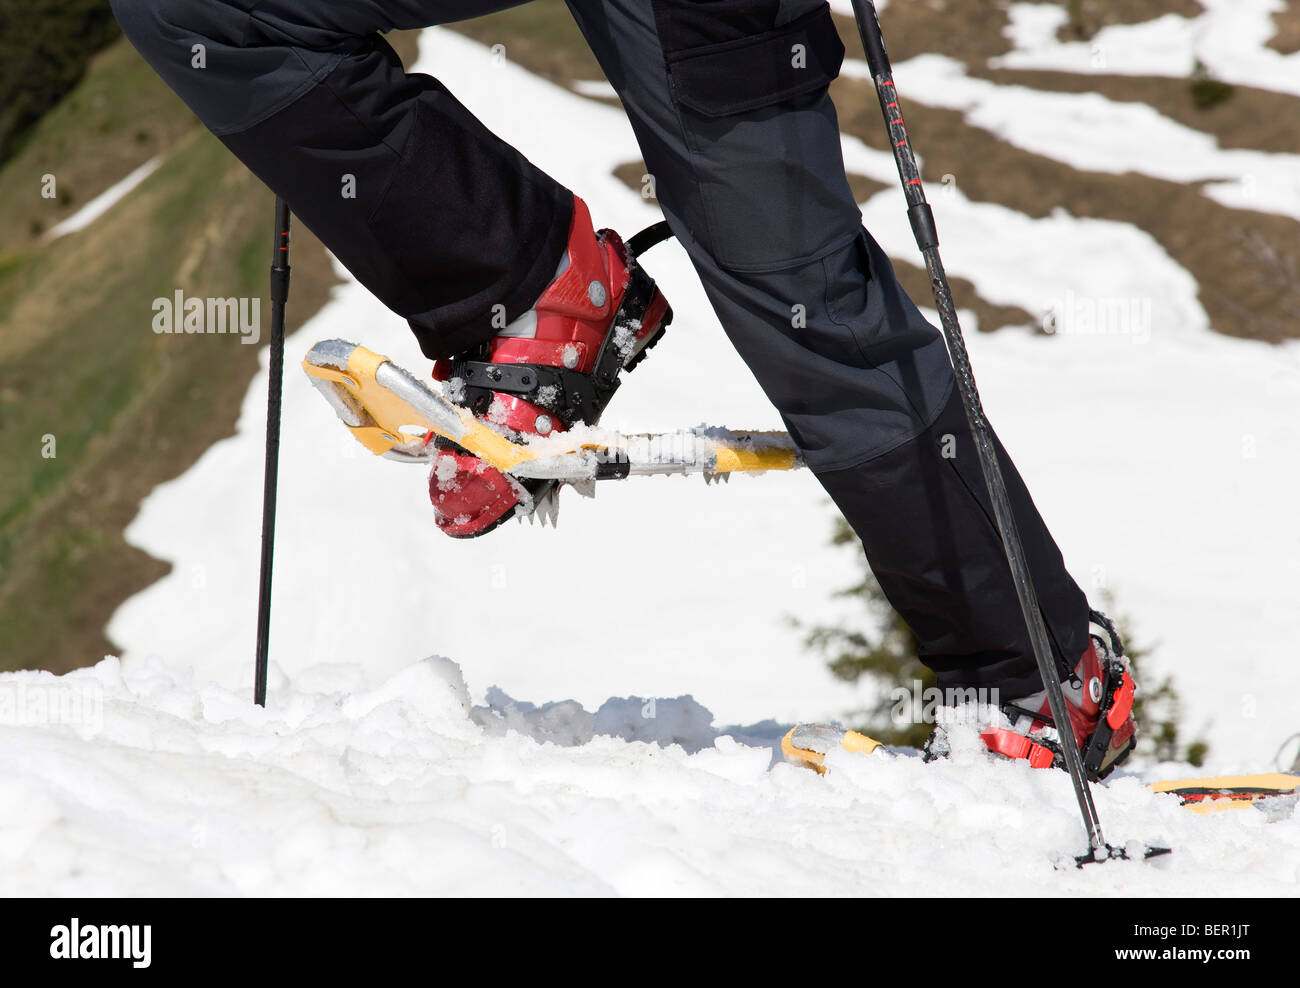 snow shoes on tour in mountains, detail - Stock Image